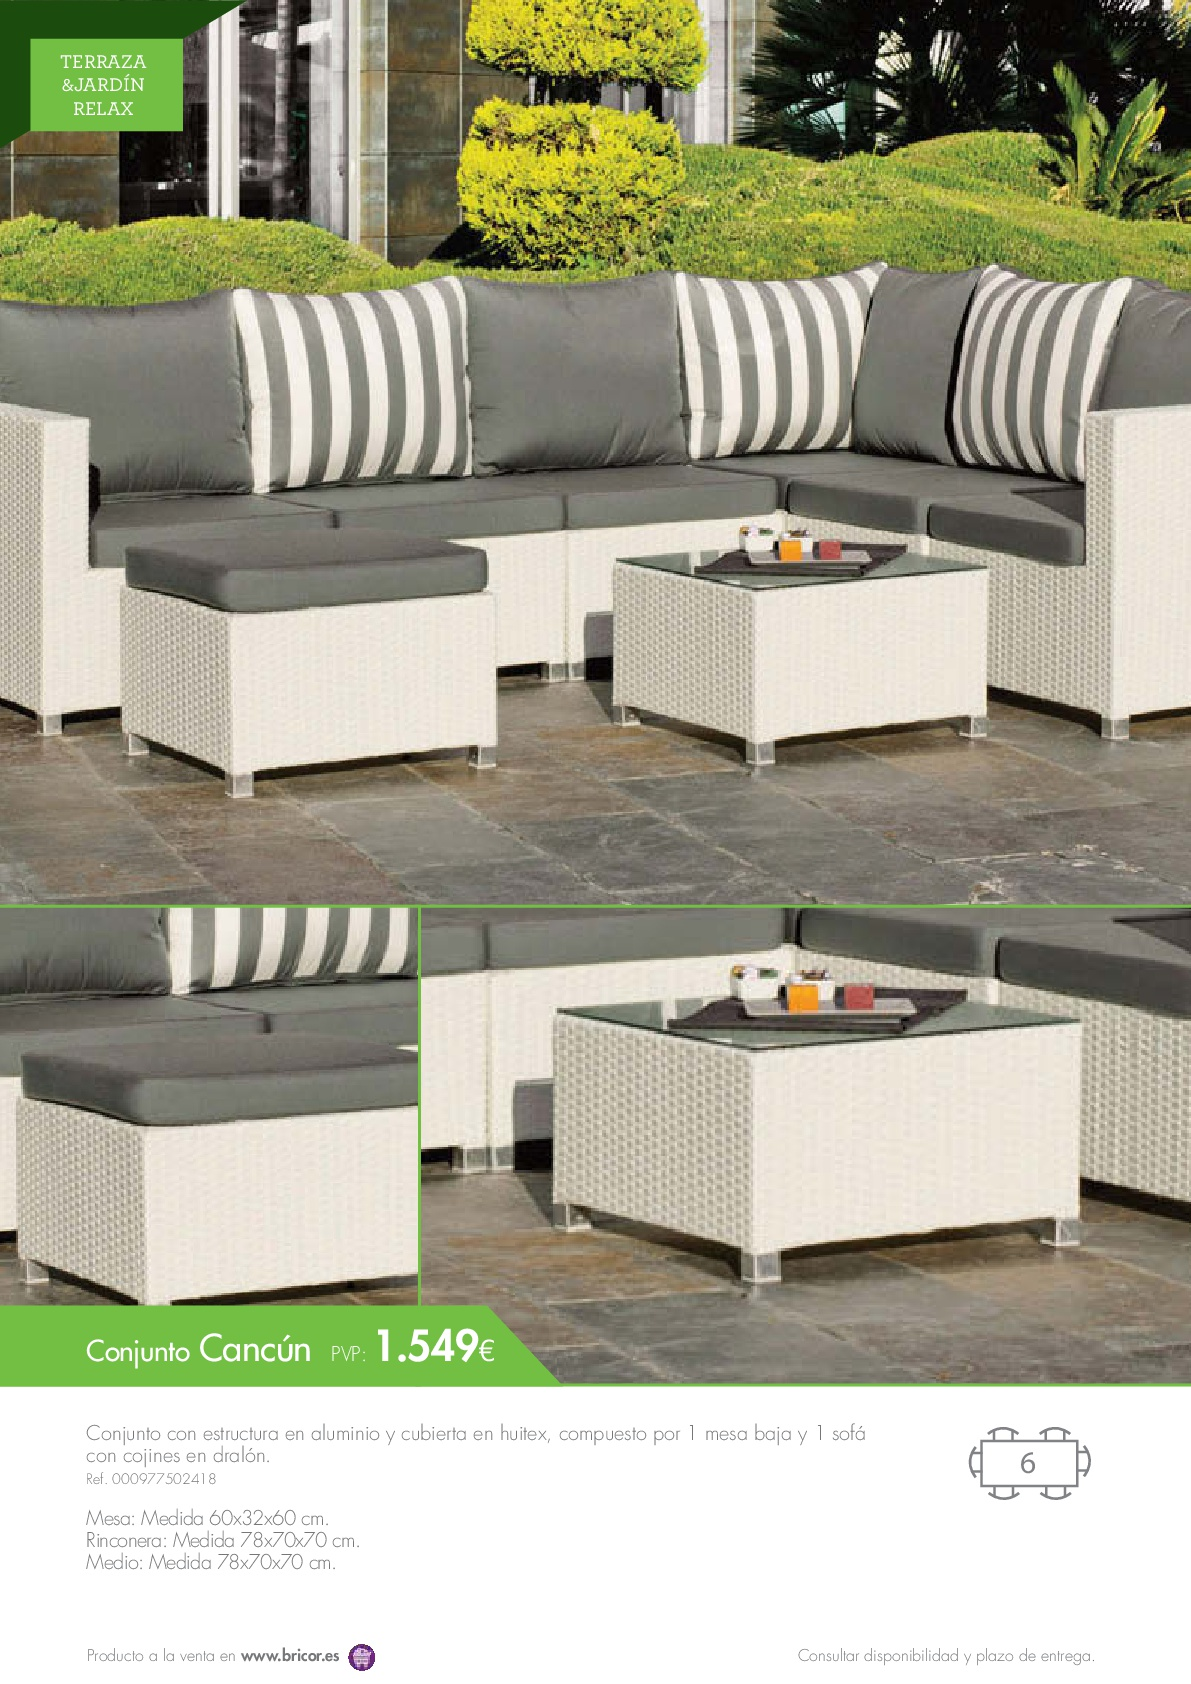 Bricor Muebles Bricor Muebles Jardin 201666 Revista Muebles